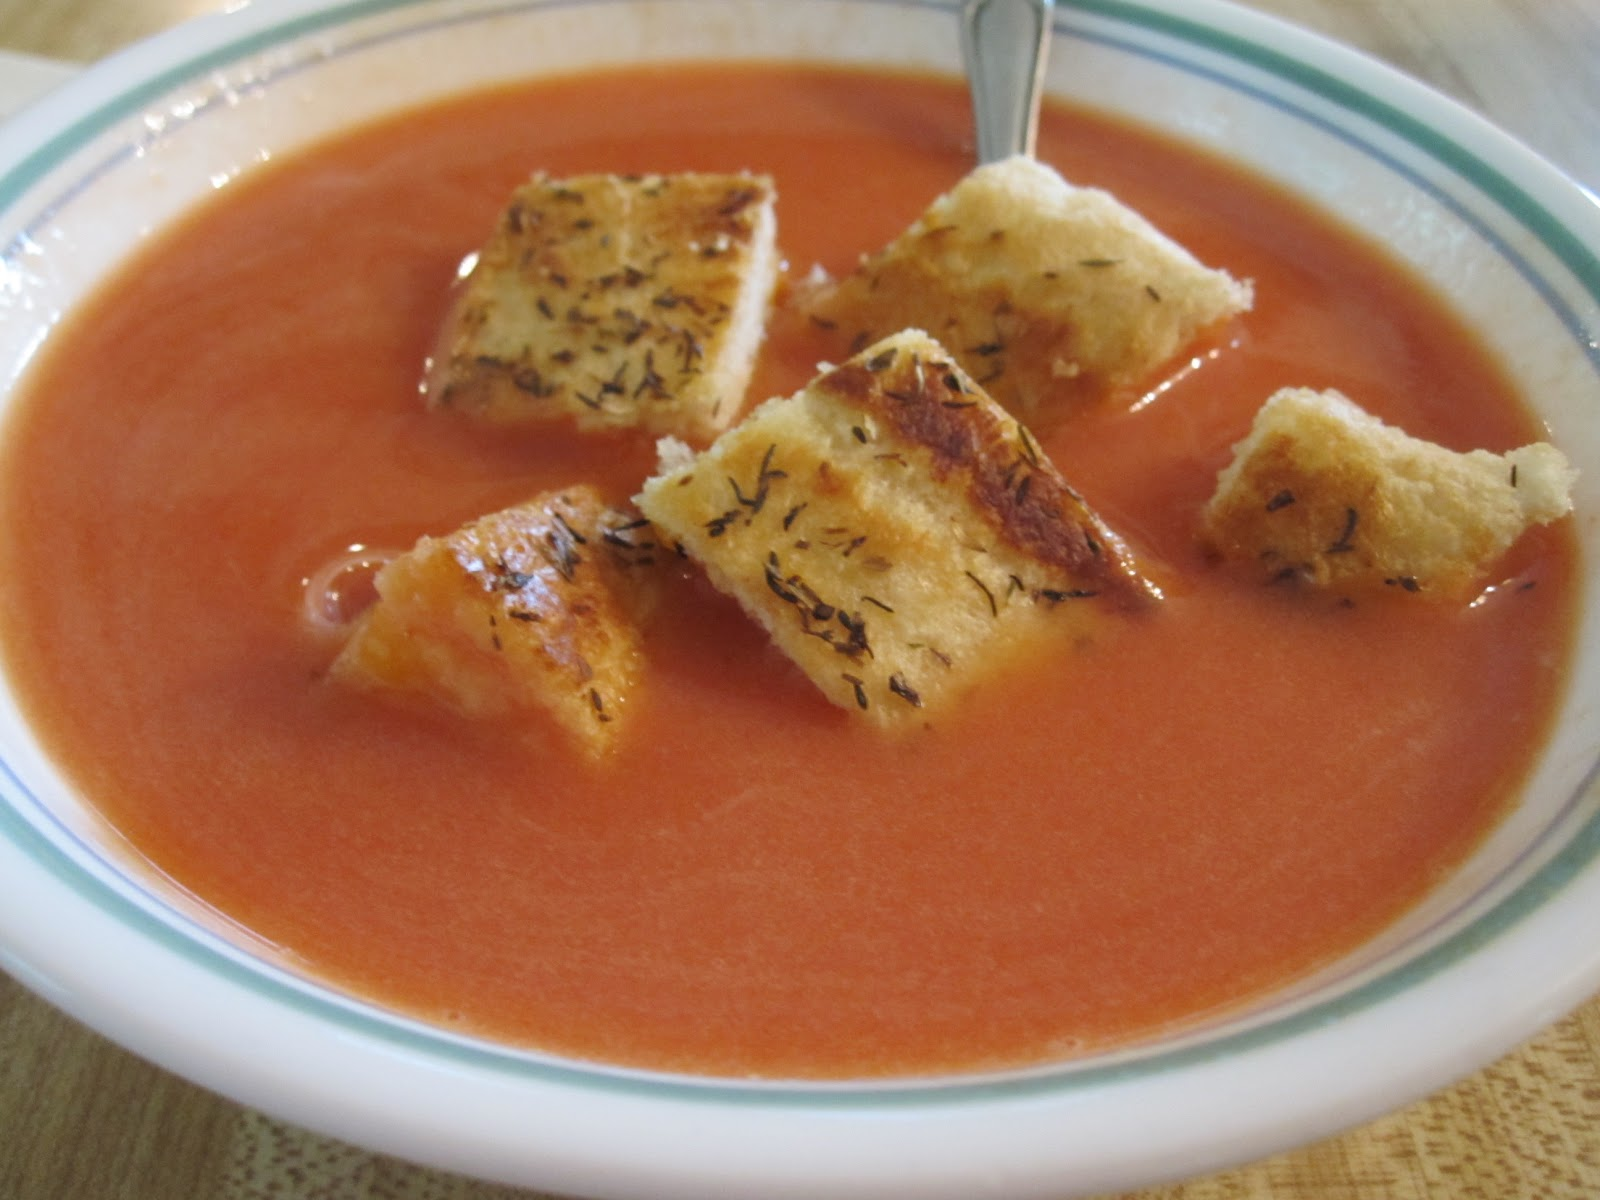 ... and Cooking!: Creamy Tomato Soup with Grilled Cheese Croutons